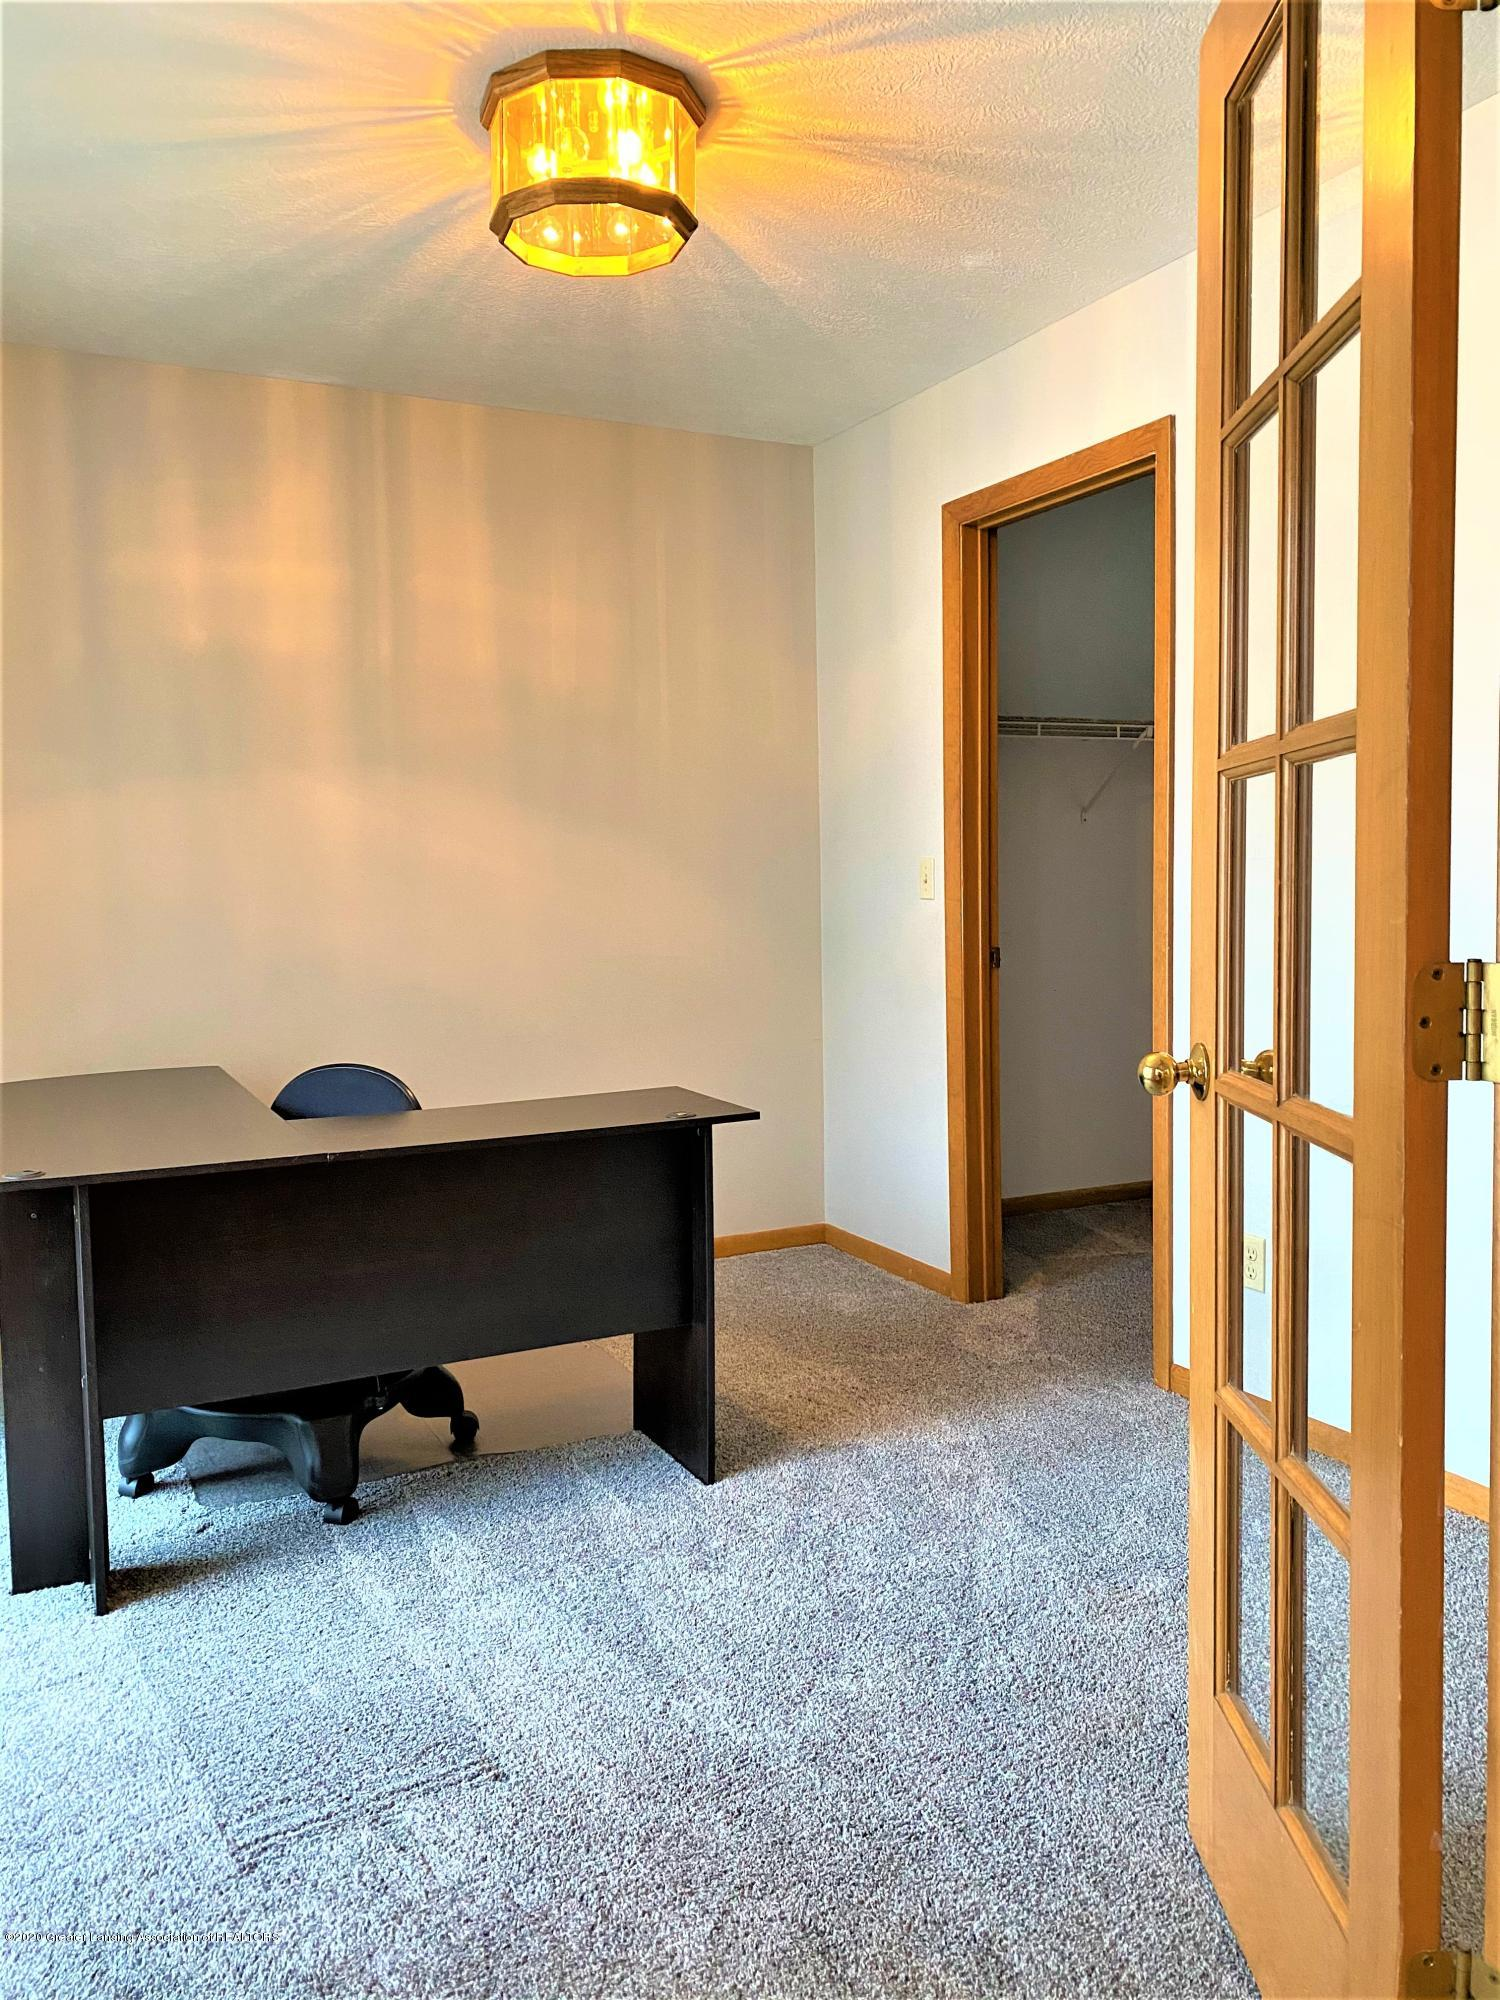 2475 Walenjus Ct - Bed 4 - 2